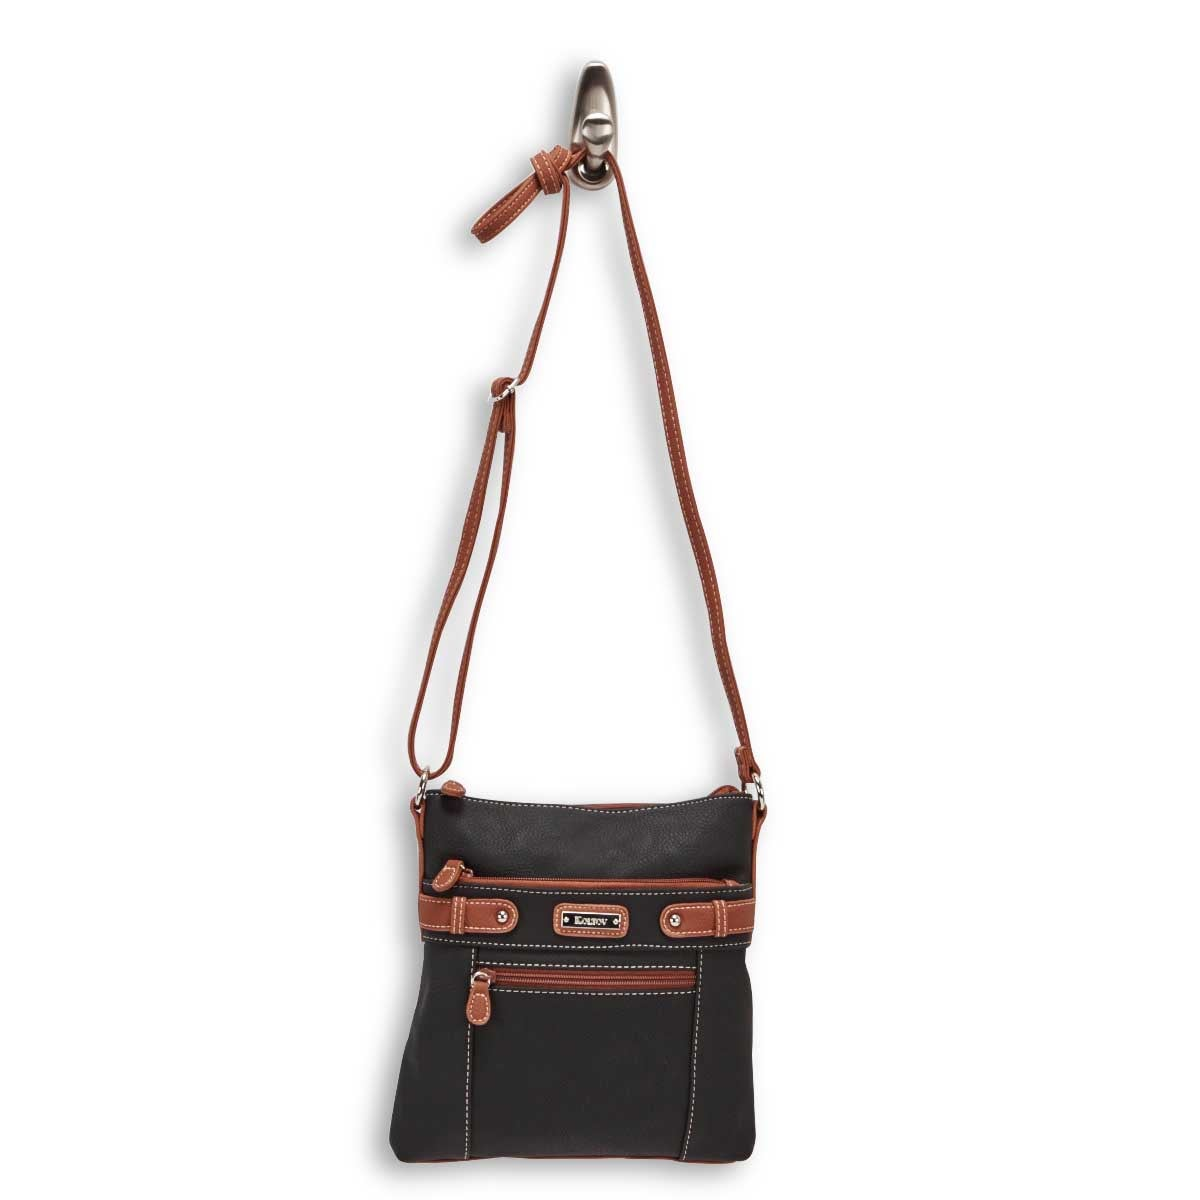 Lds Sally blk/hazel small cross body bag